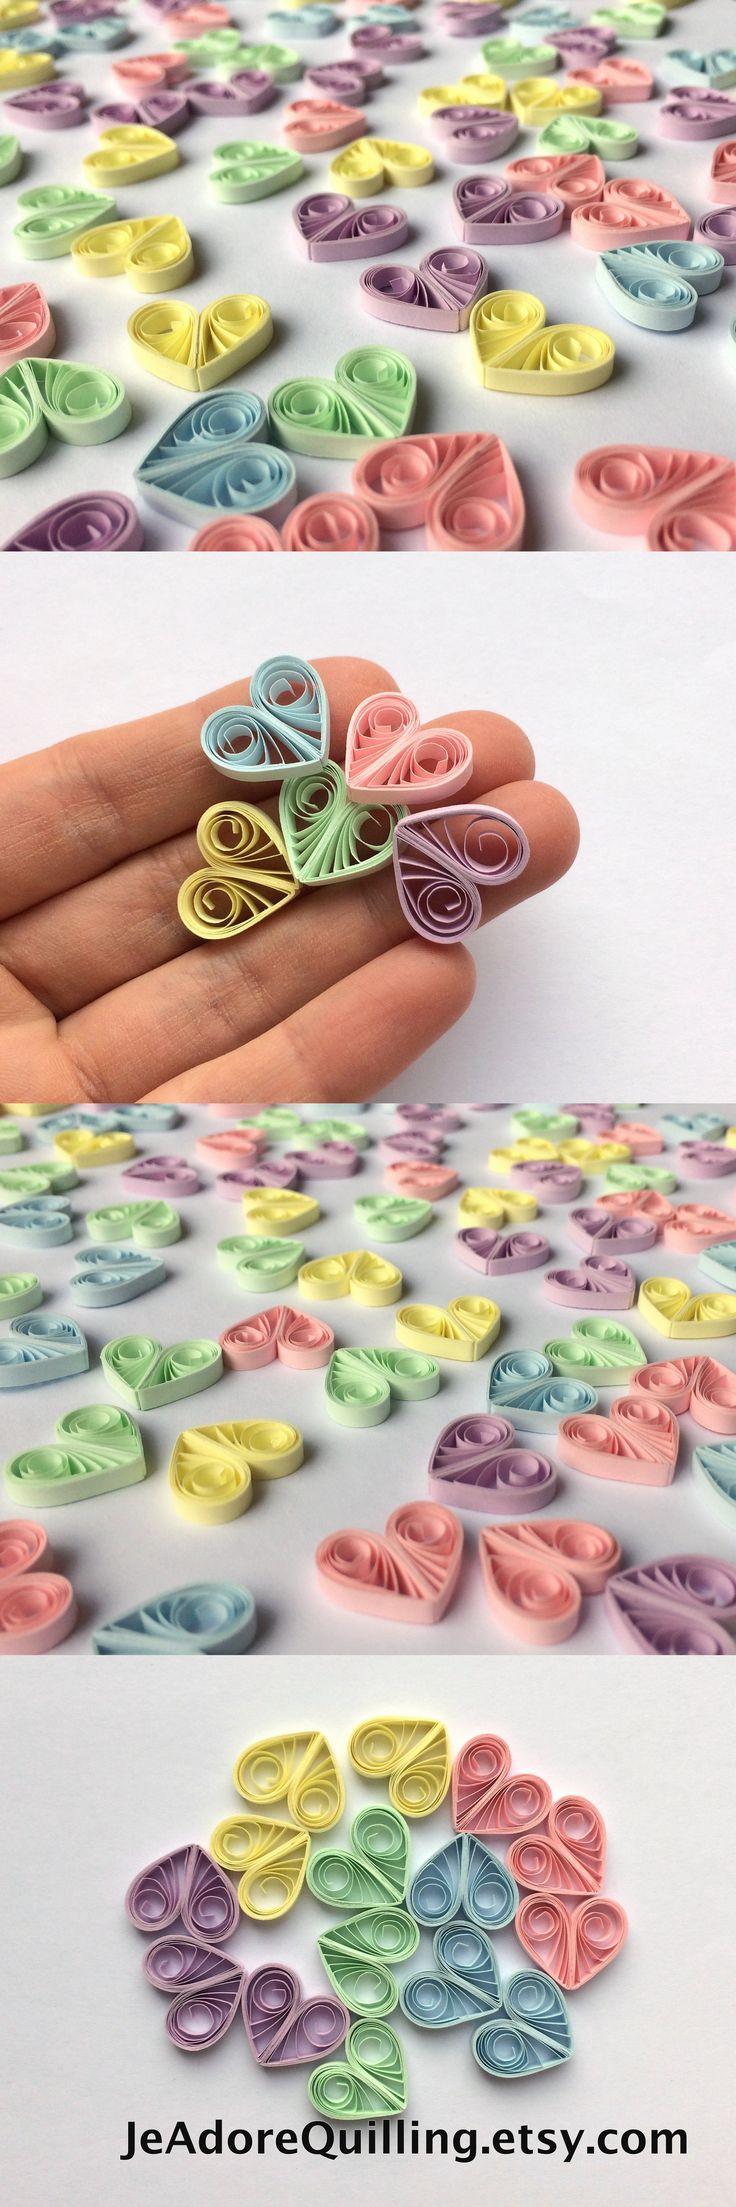 Quilled Hearts Paper Quilling Art Confetti Scatter Ornaments Gifts Fillers Easter Mothers Day Baby Bridal Shower Wedding Pastel